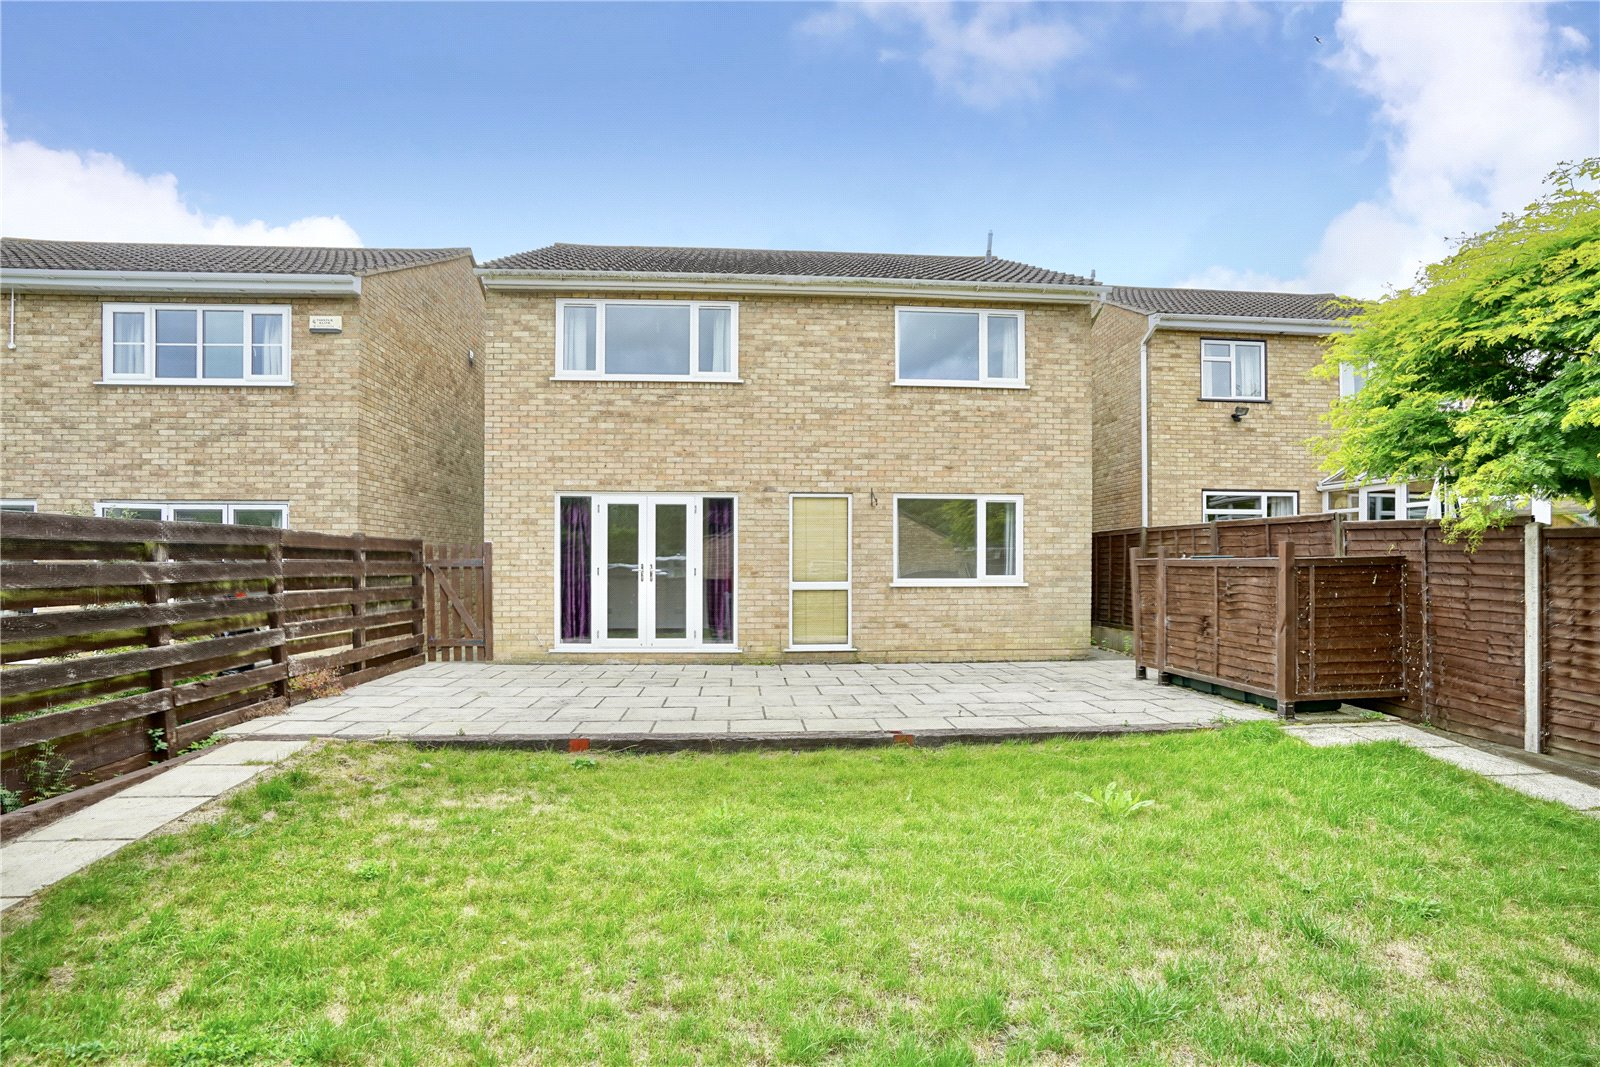 4 bed house for sale in Lakeside Close, Perry  - Property Image 4